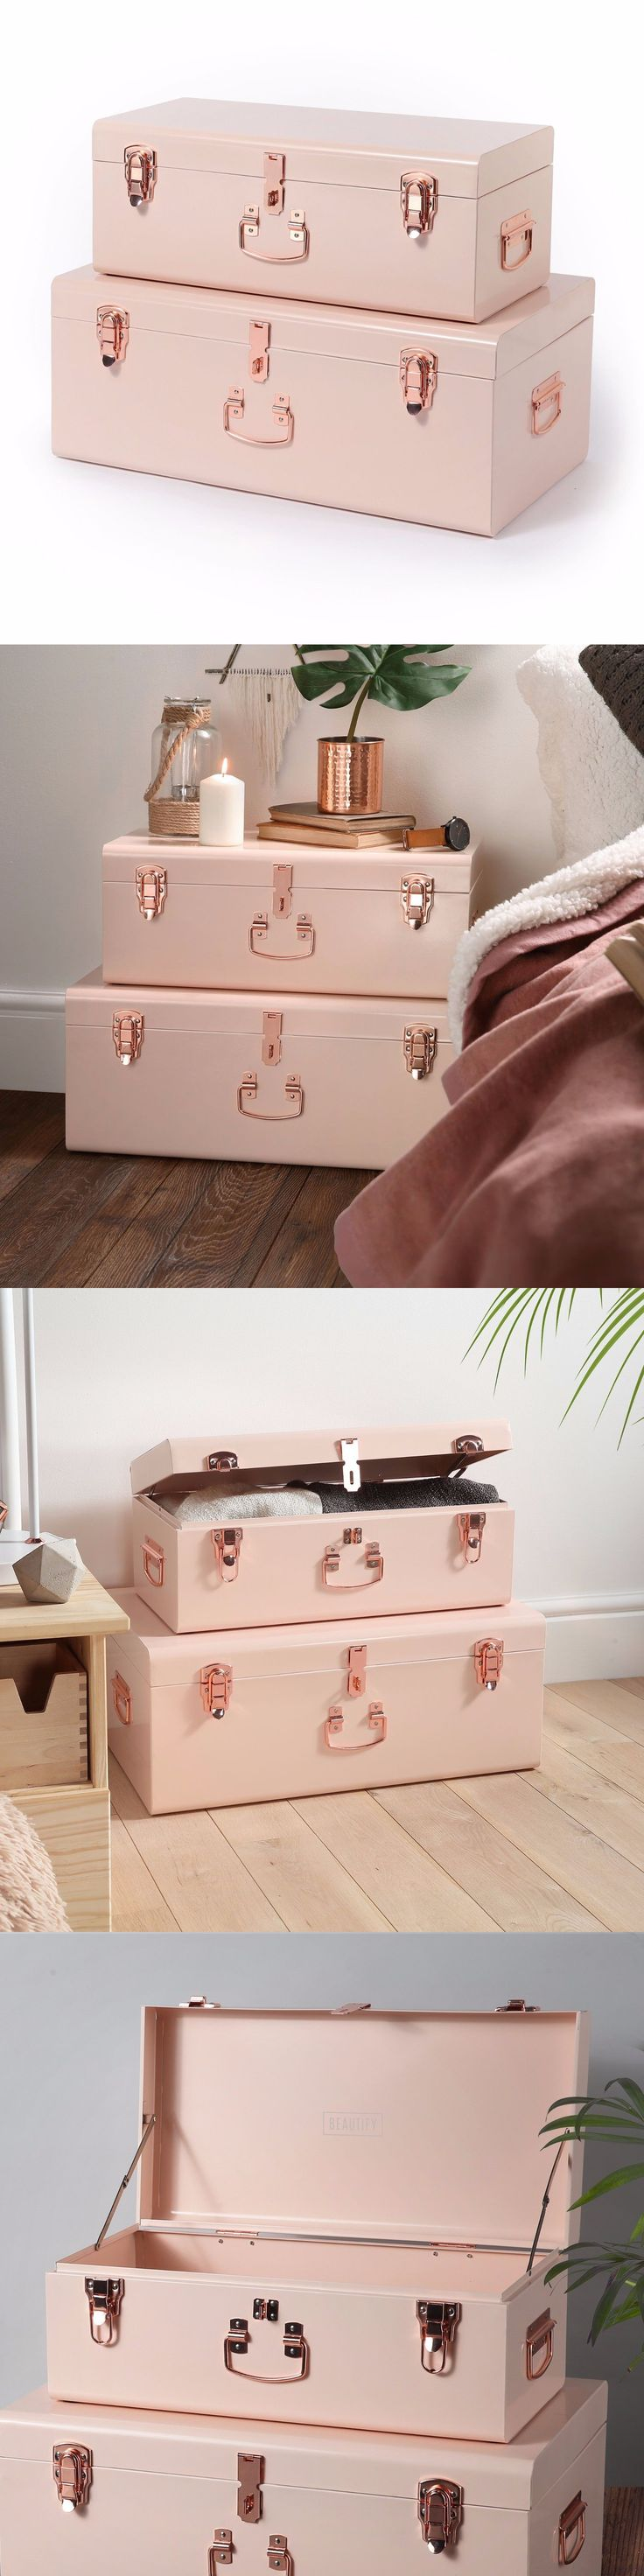 Trunks and Chests 125085: Beautify Large Blush Pink Steel Storage Trunk Chest Set Dorm Bedroom Footlocker -> BUY IT NOW ONLY: $99.99 on eBay!